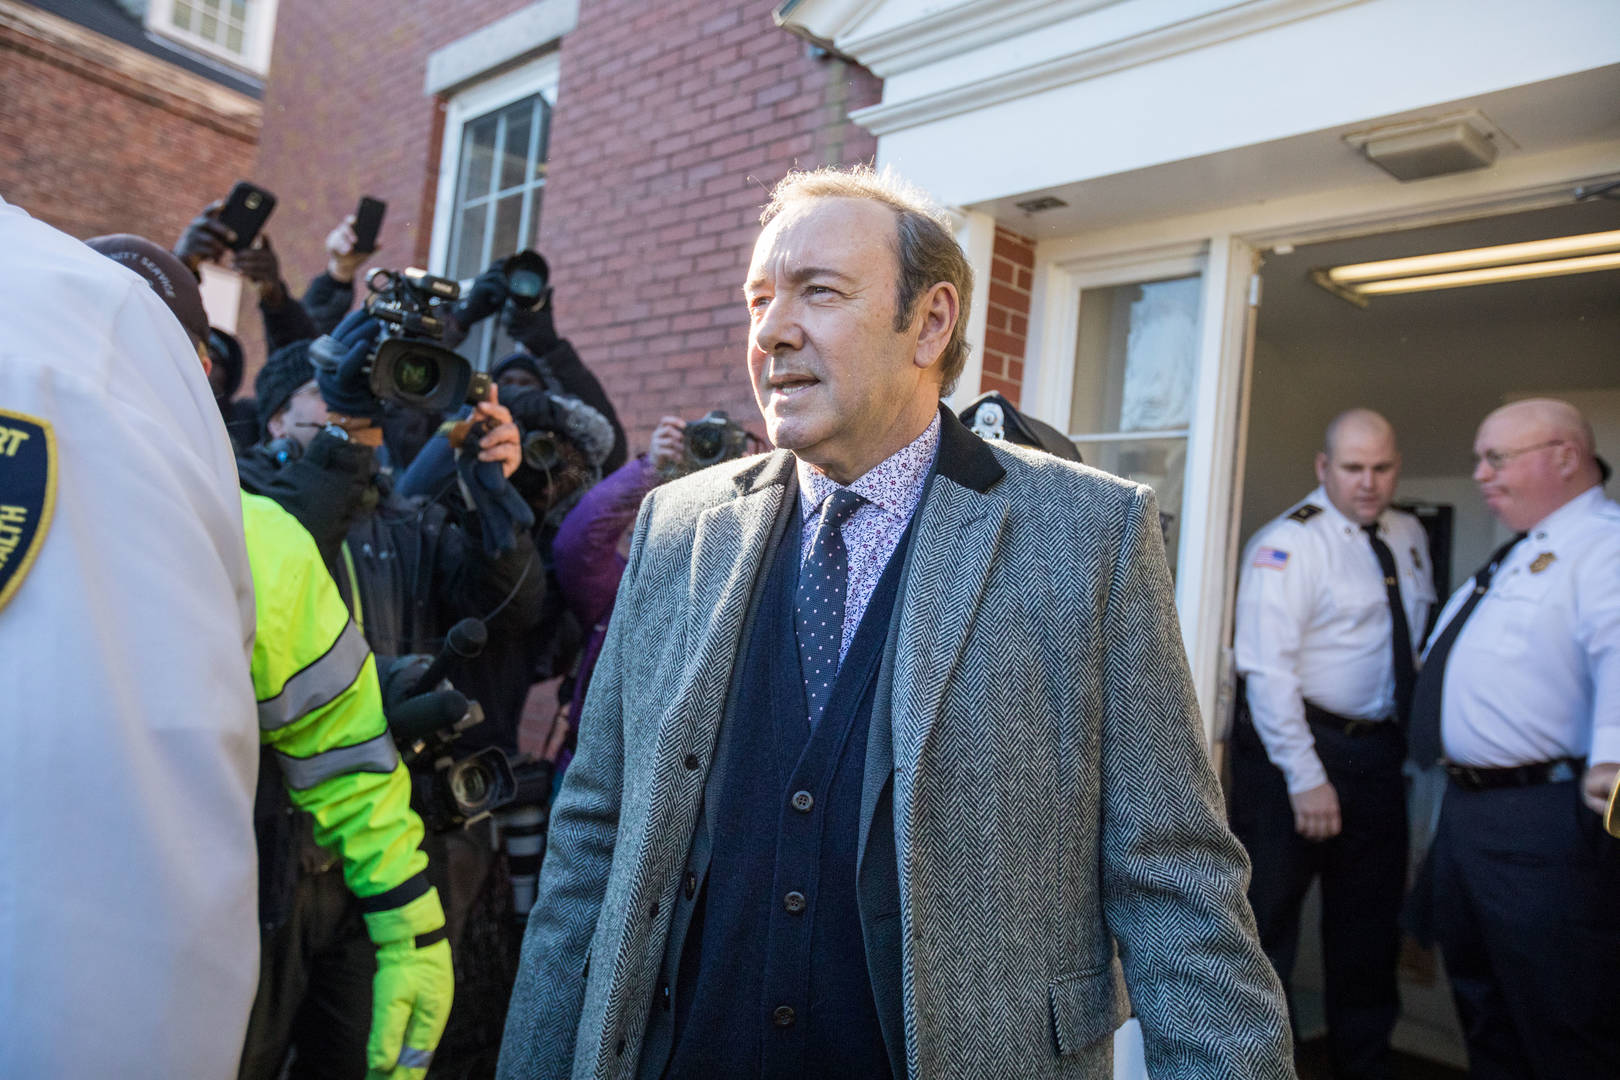 Kevin Spacey Accuser Provides Text Messages From Night Of Incident